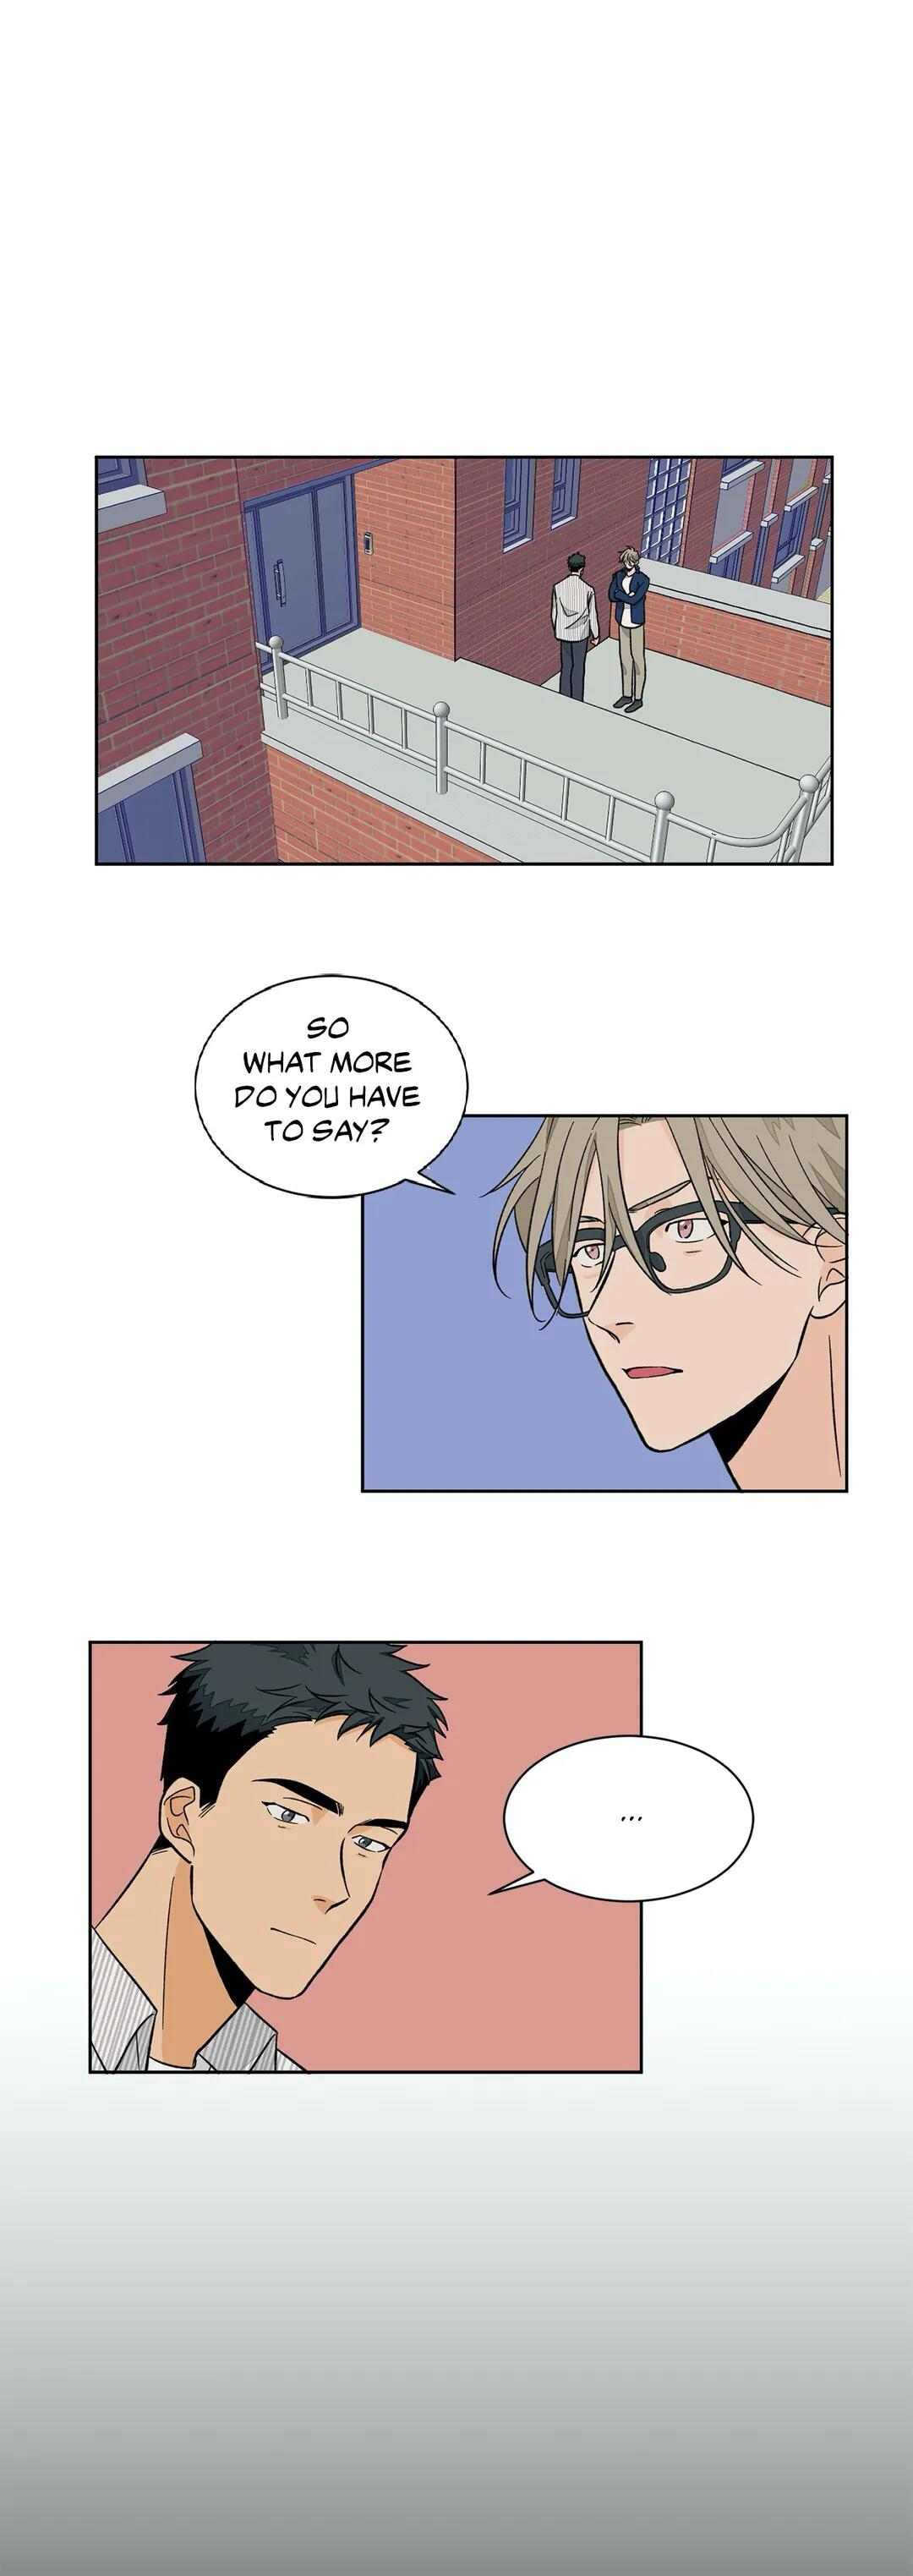 Ove Me, Doctor! - chapter 21 - #2